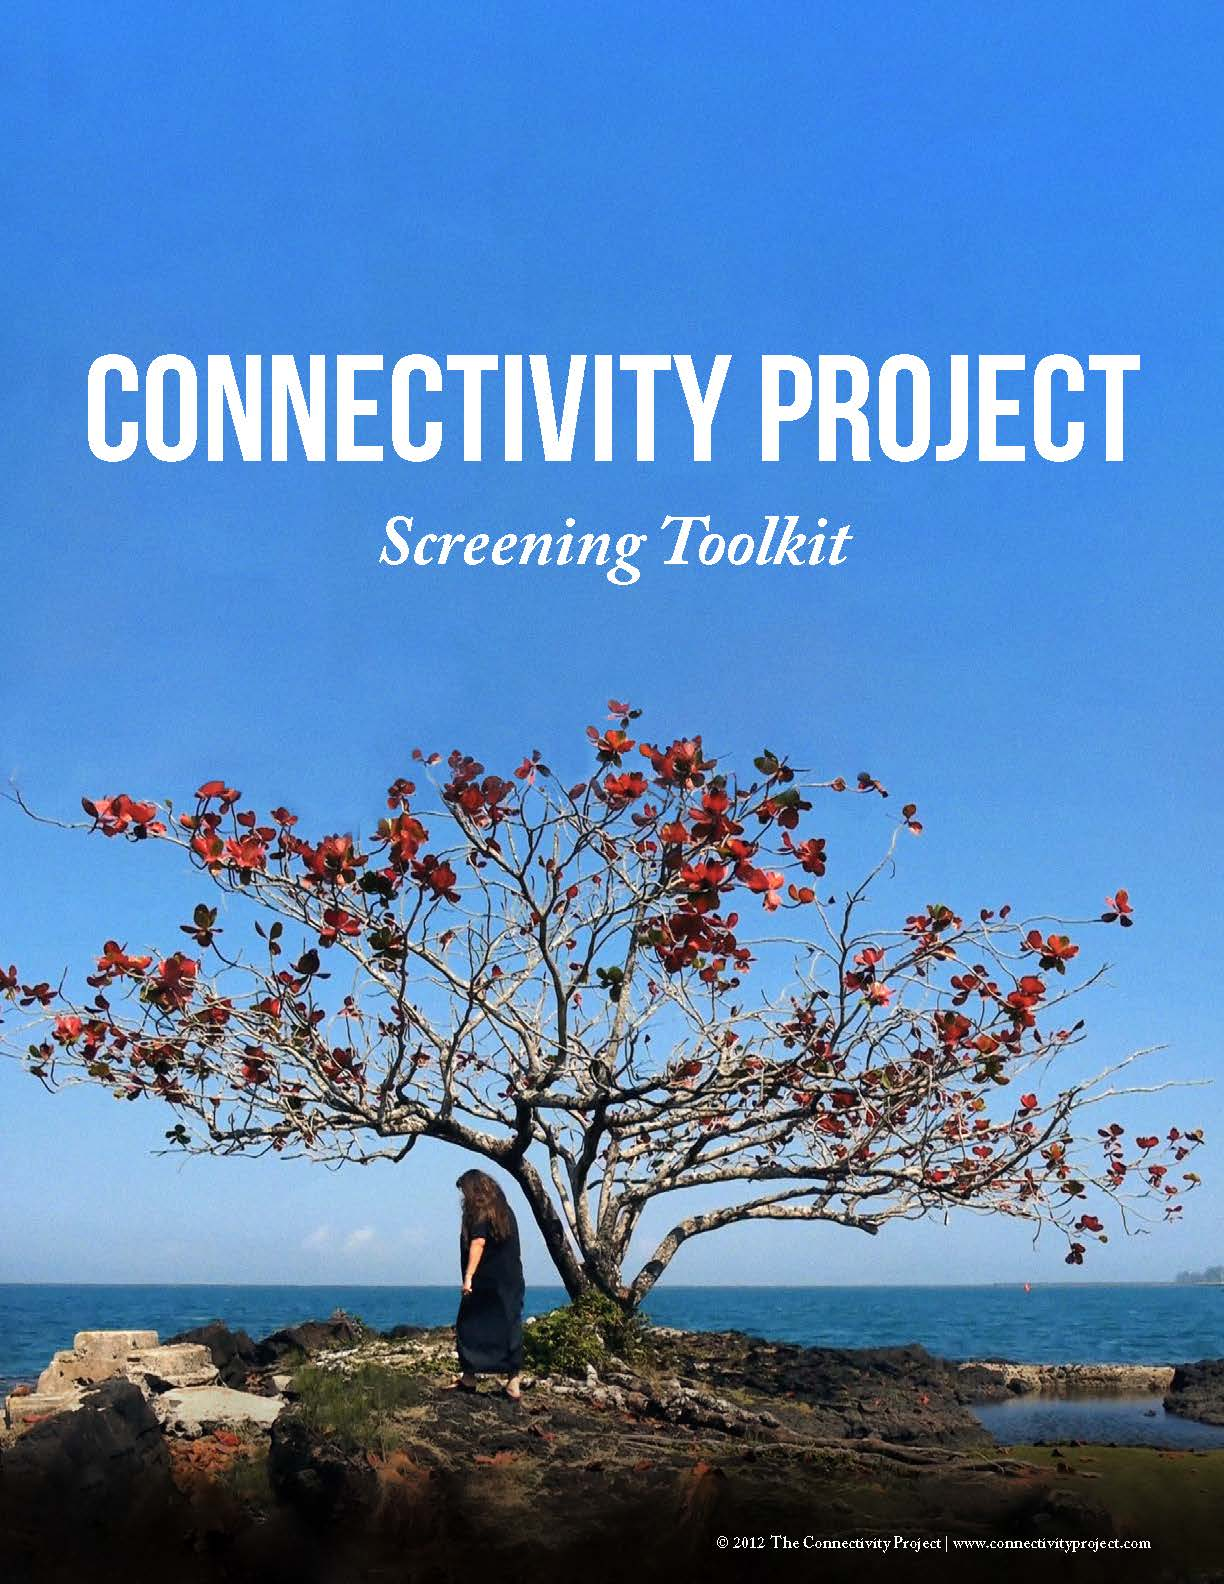 CONNECTIVITY PROJECT Screening Toolkit